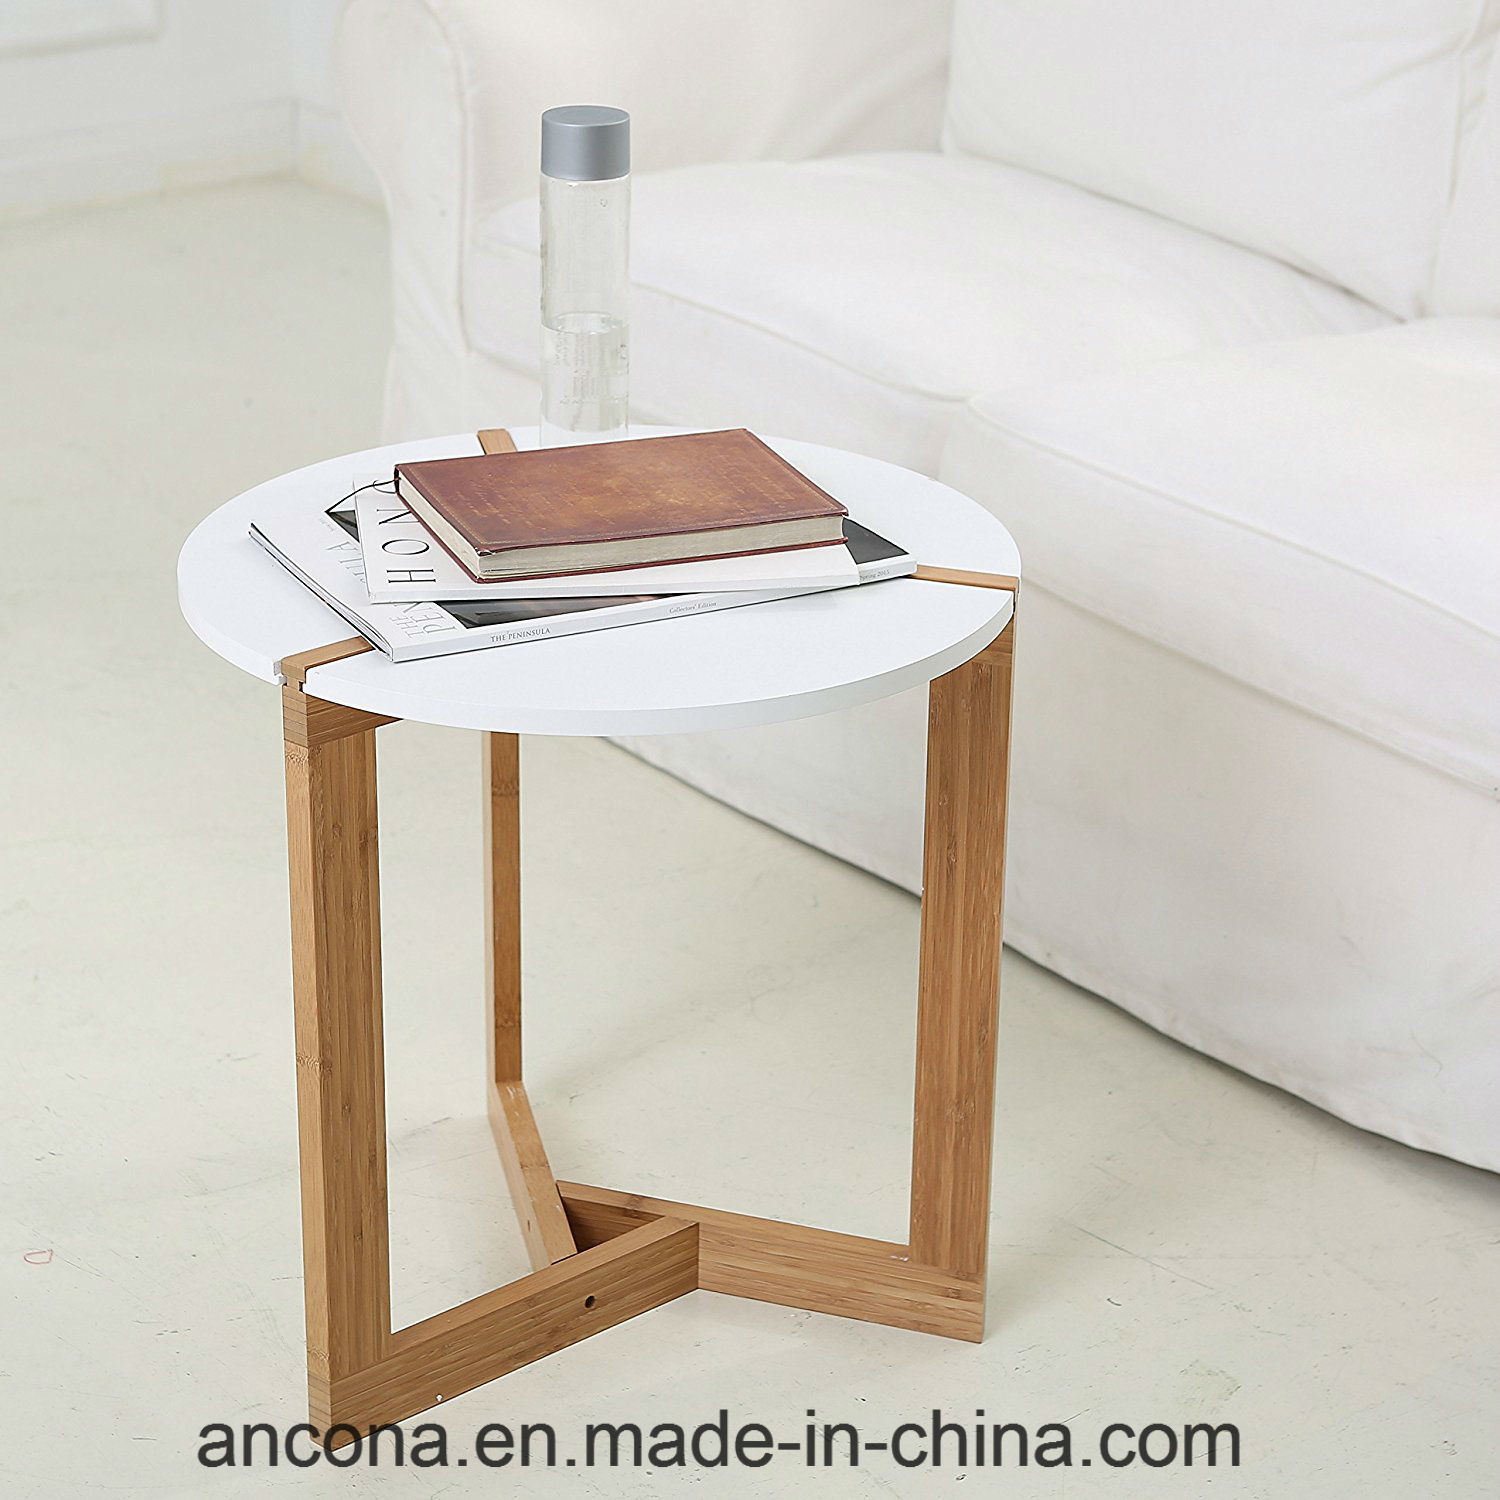 China Simple Design Round Table Bamboo Coffee Living Room Furniture